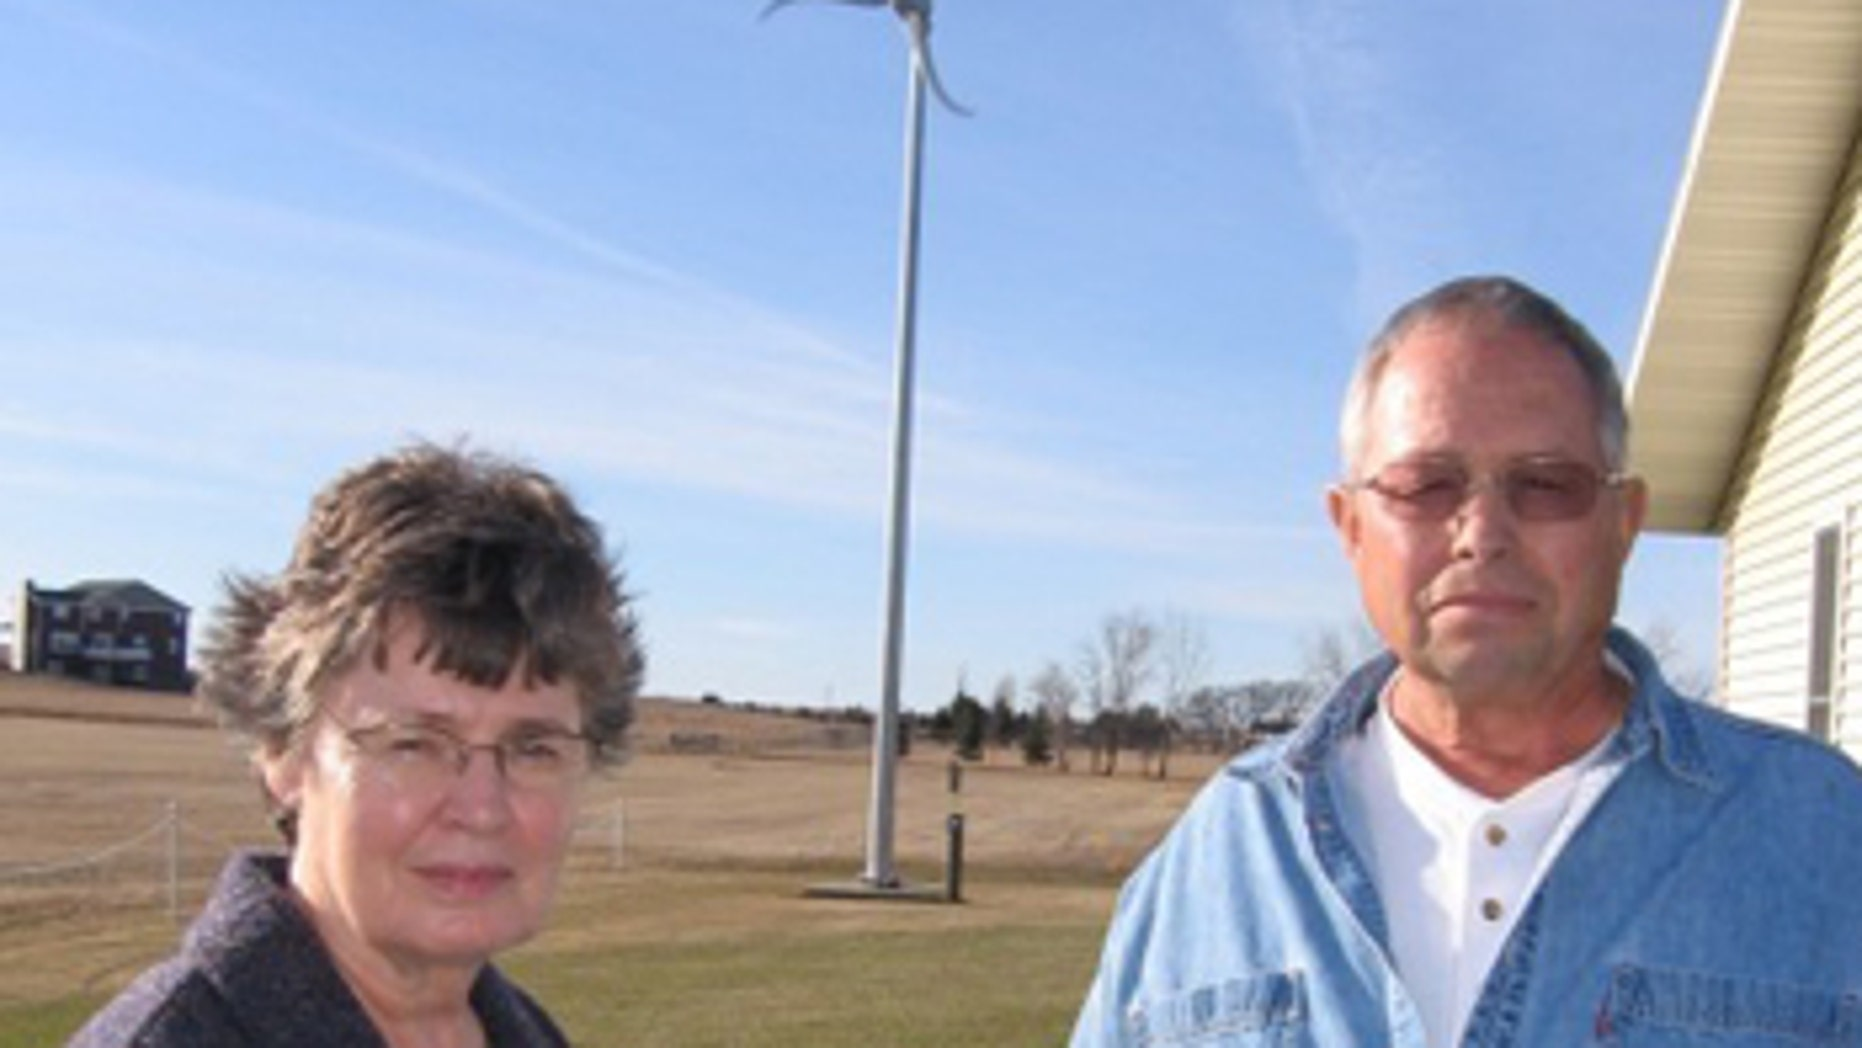 Jeanne and Larry Walth, of Wishek, N.D., save roughly $50 monthly using the wind turbine city officials say must come down.